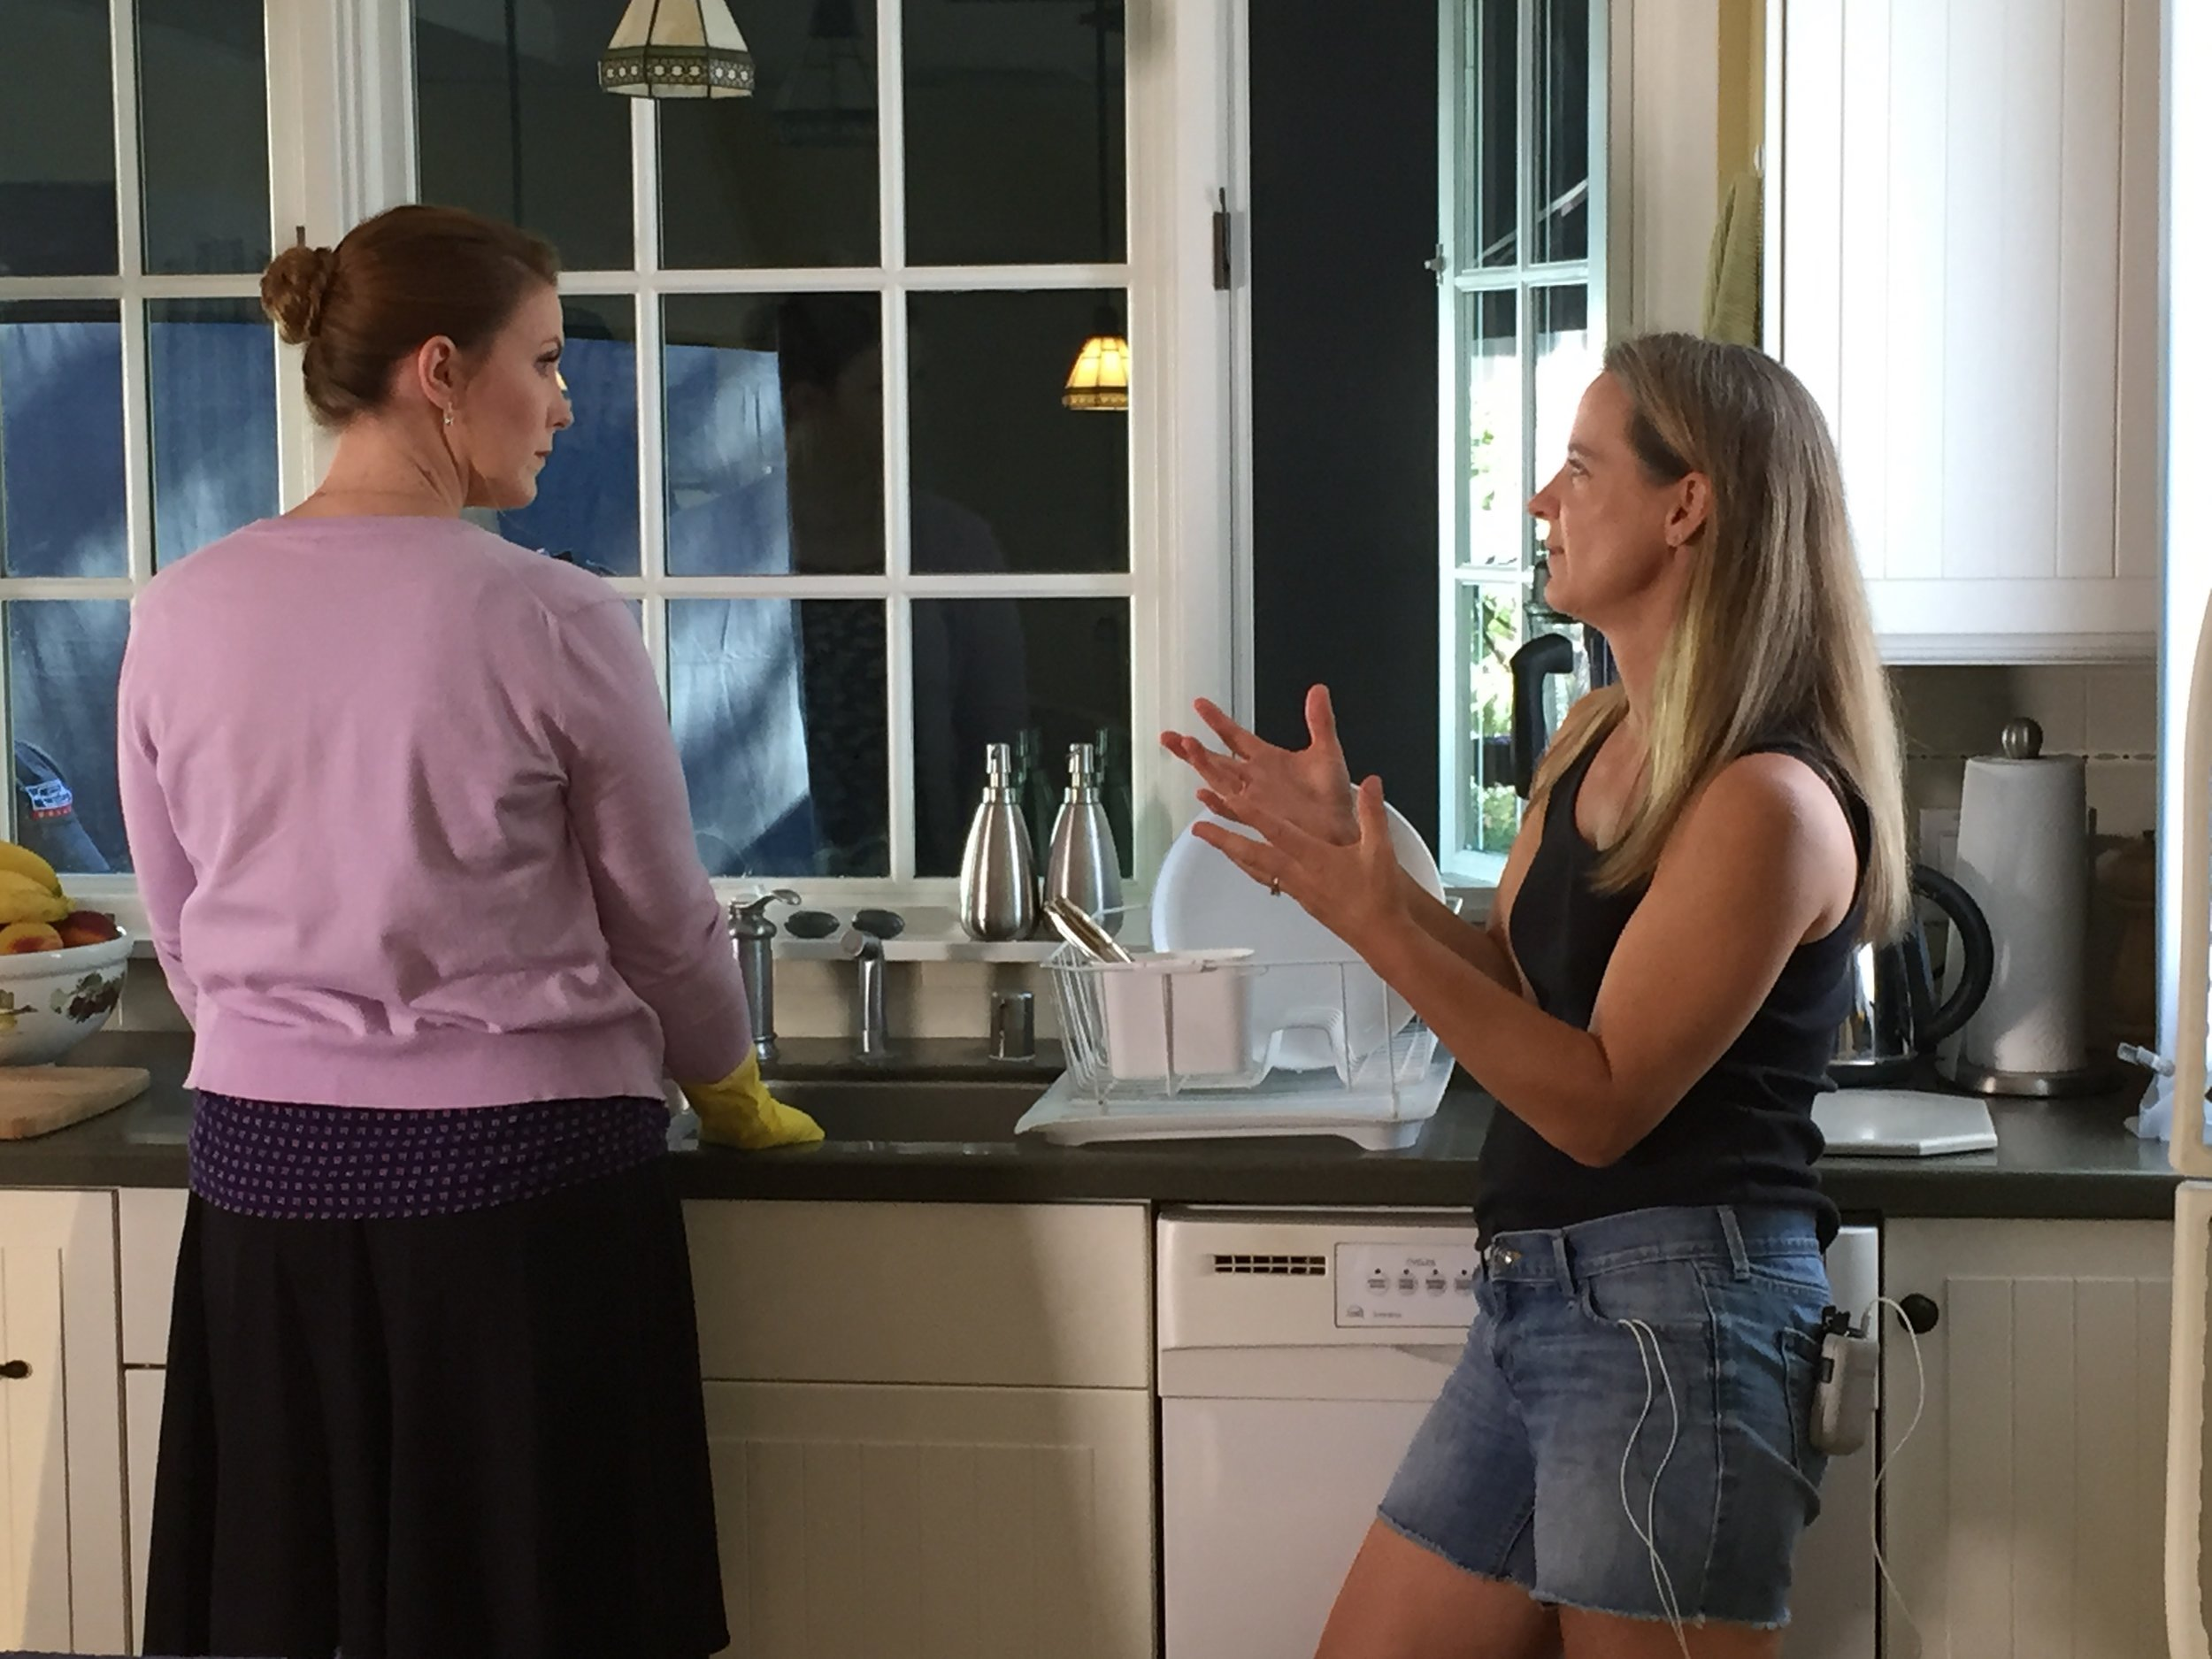 Lead actress Caitlin Brandes and Director Monika on the set of WINK